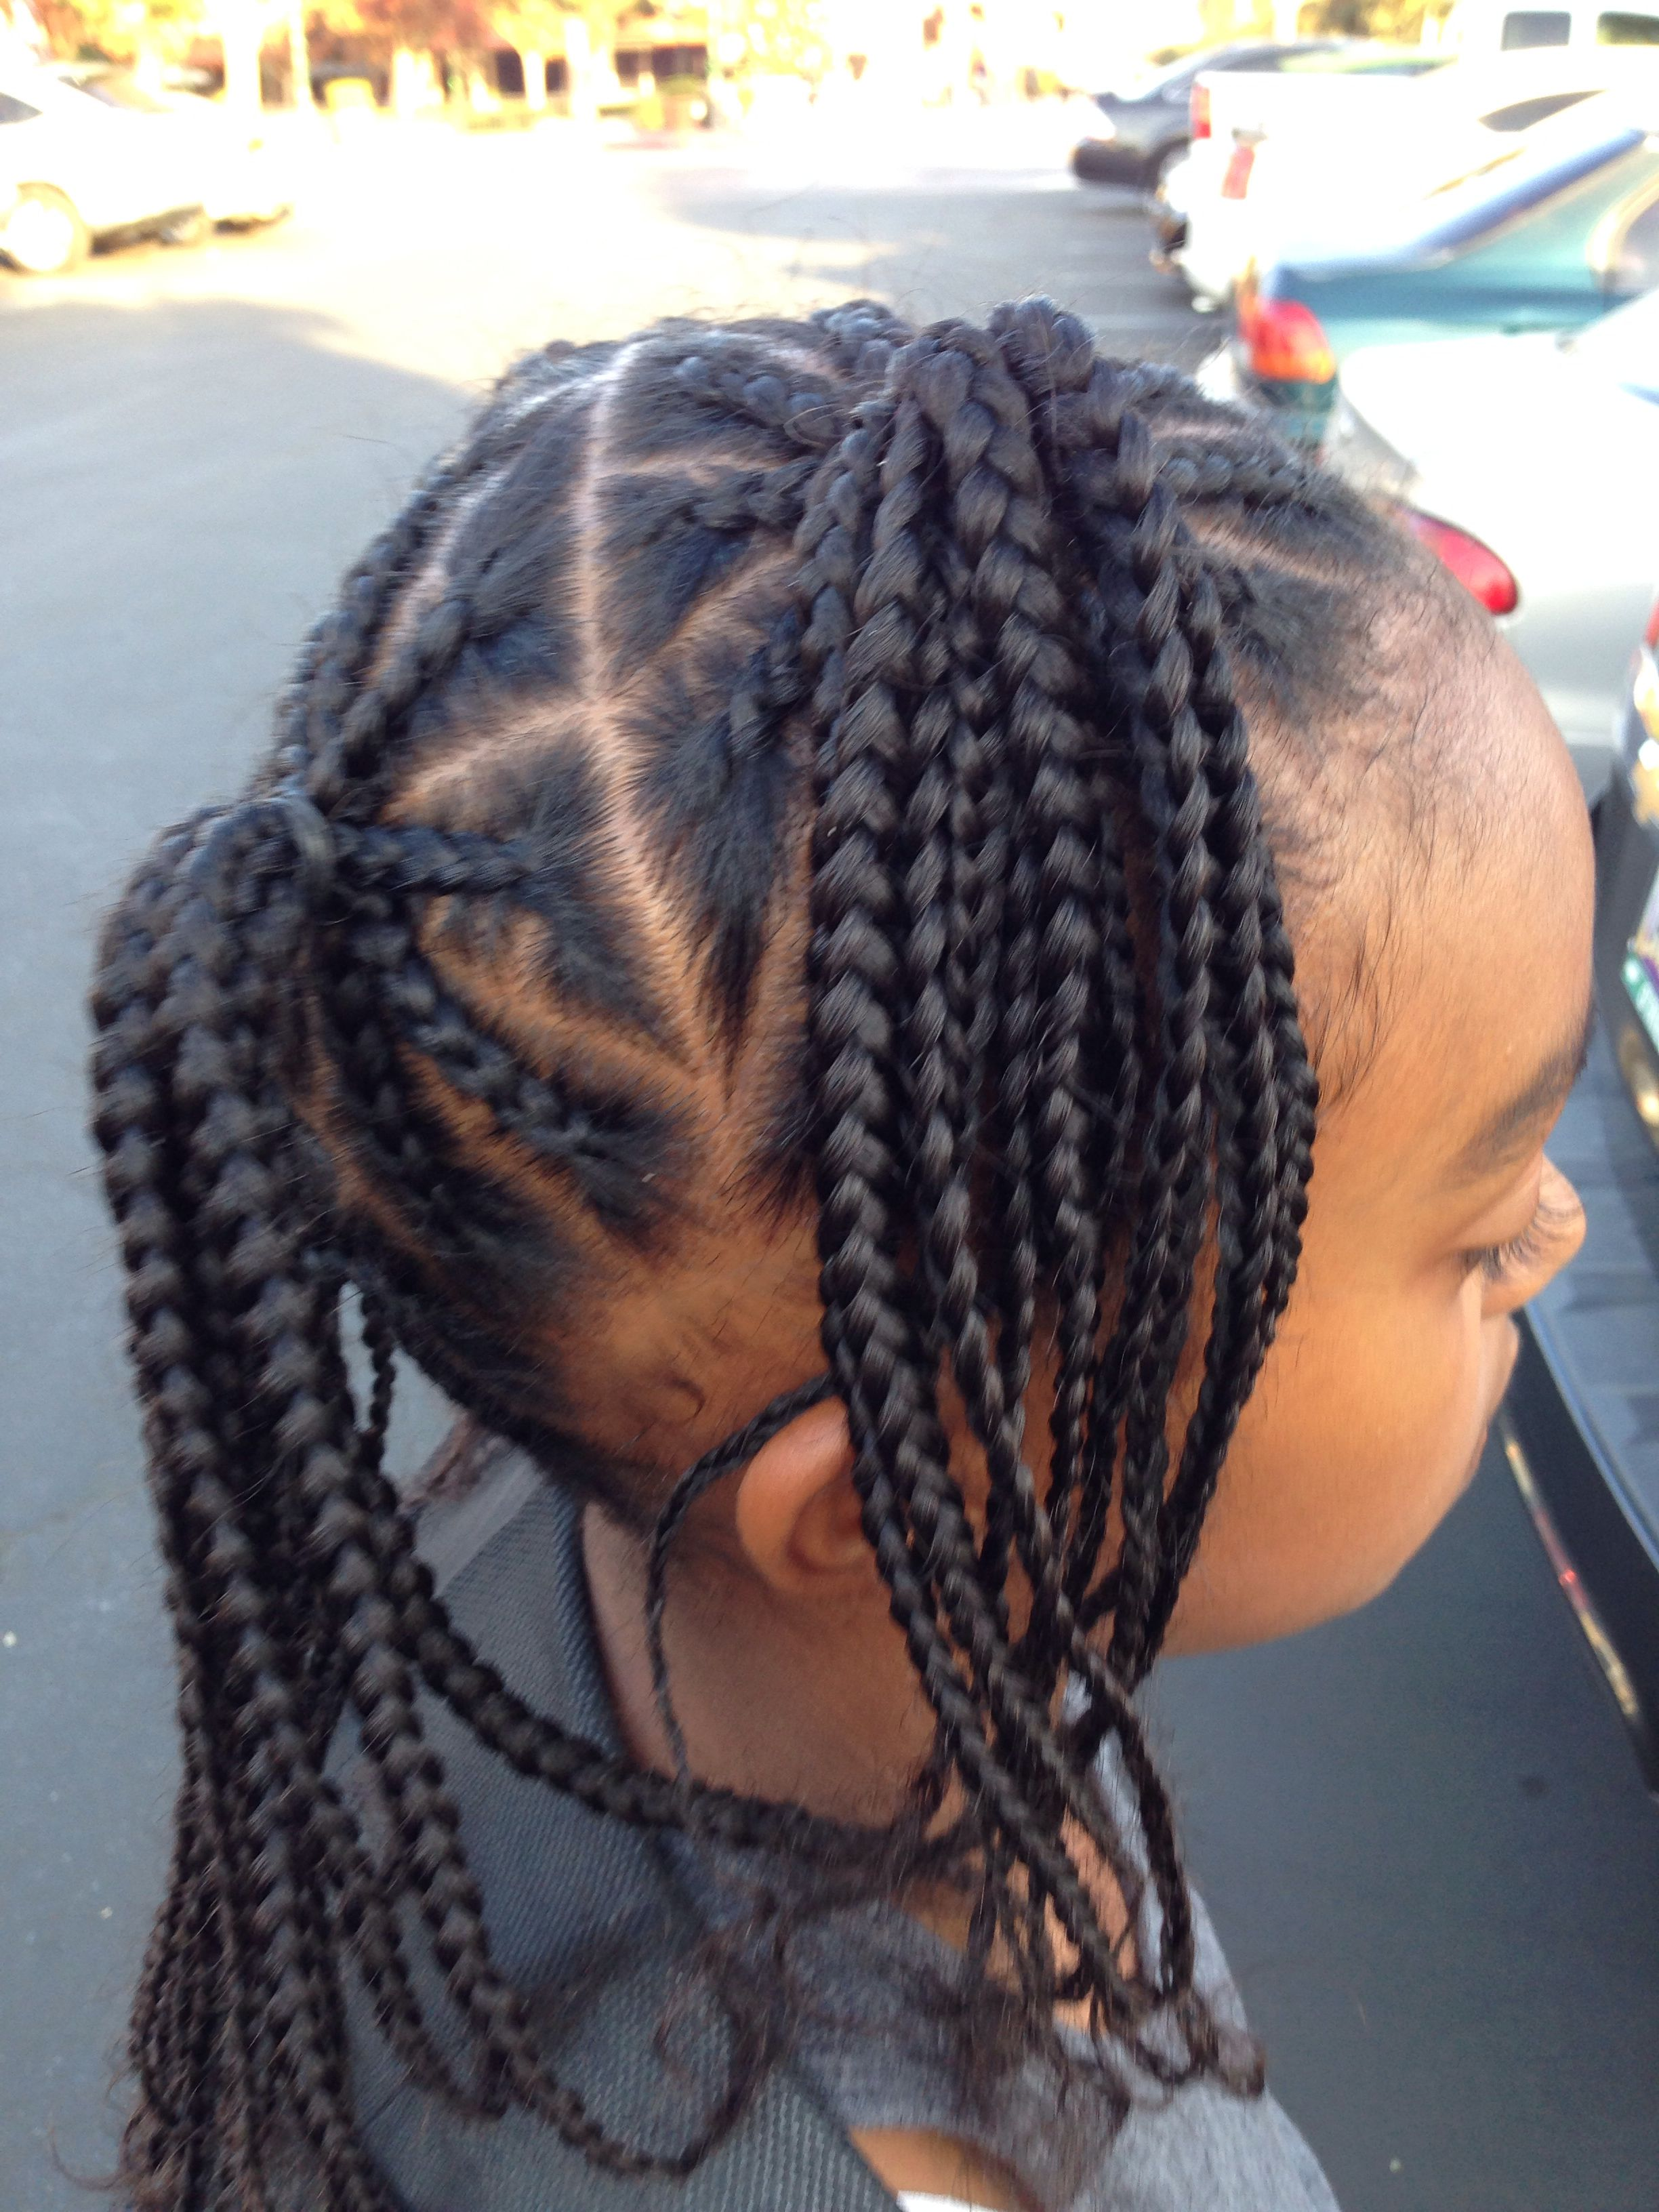 Braids all over side view | Kids hairstyles, Cute braided hairstyles, Lil girl hairstyles